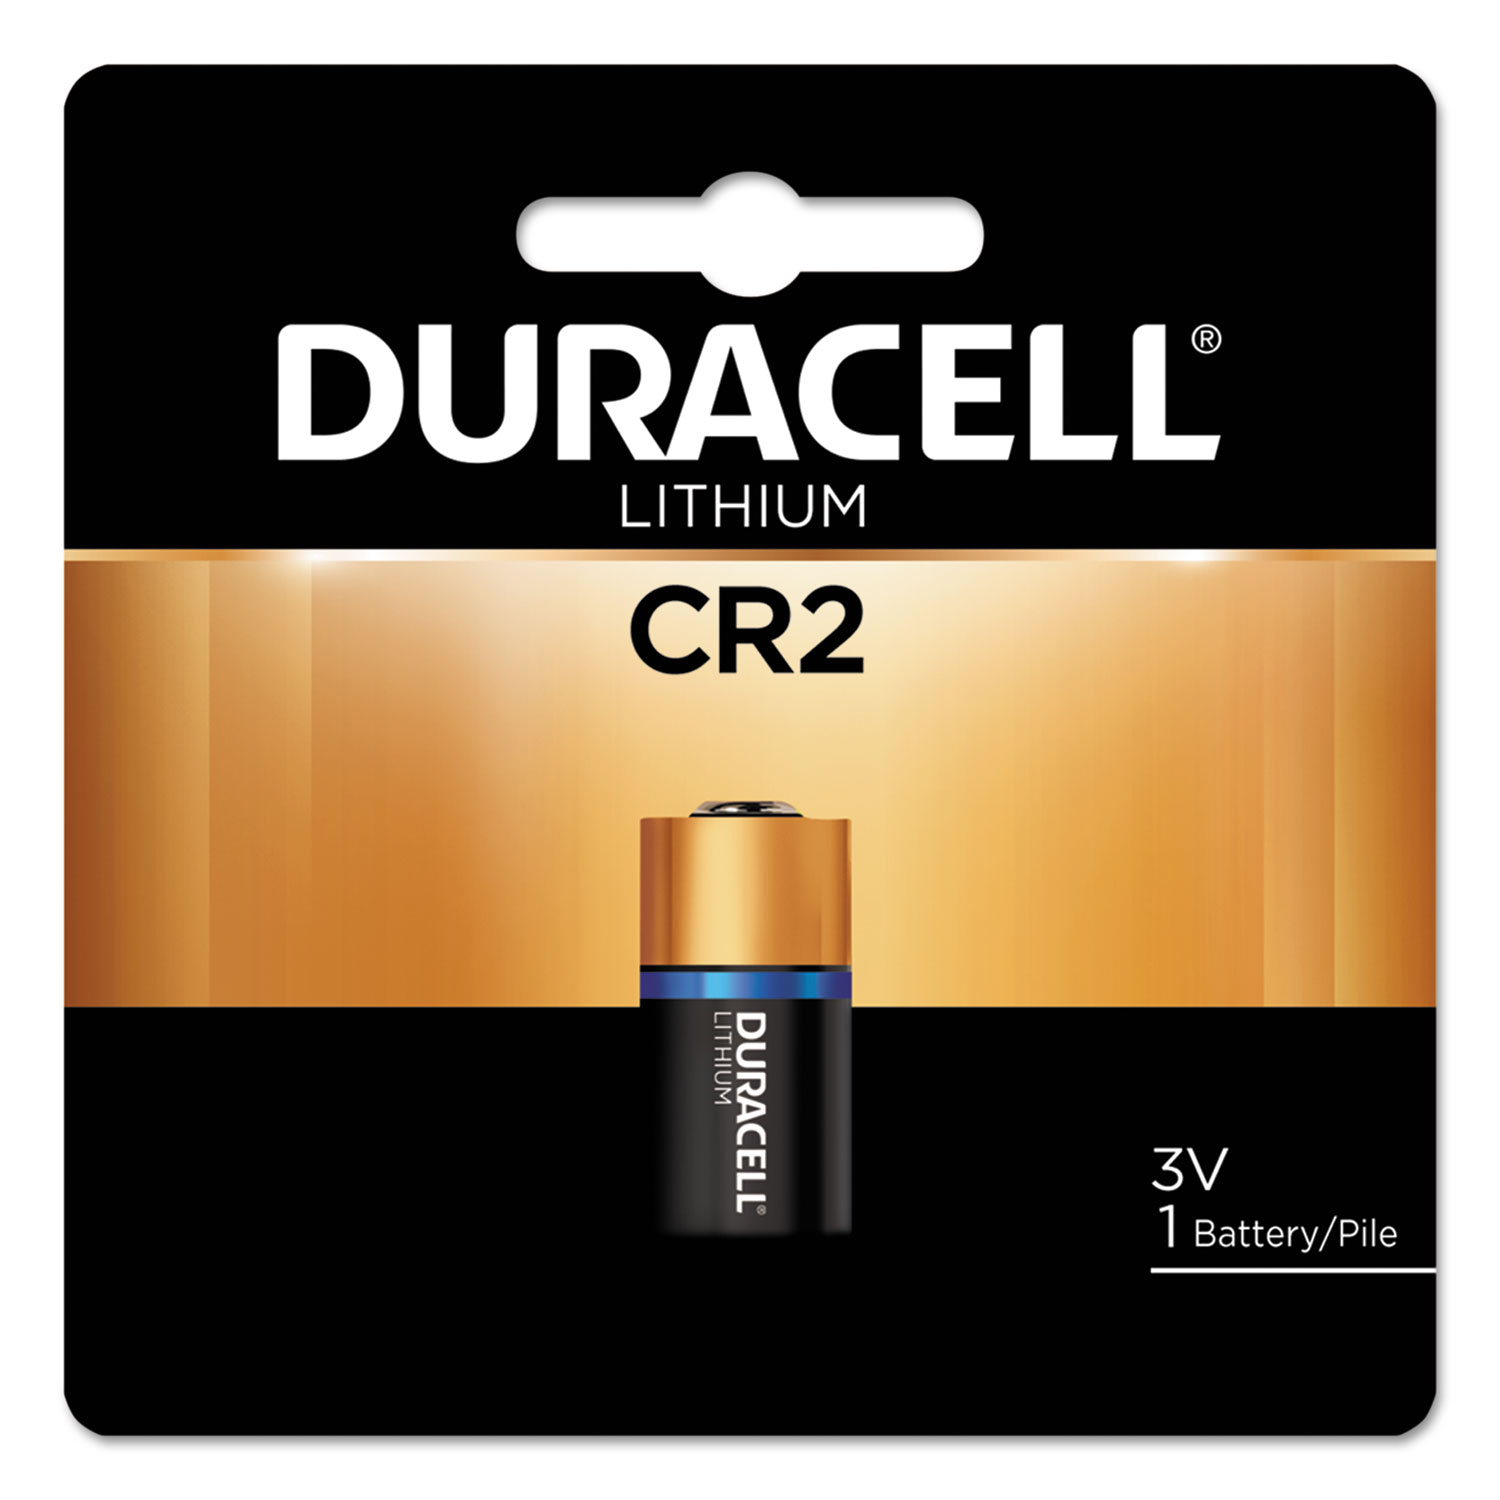 Specialty High-Power Lithium Battery, CR2, 3V